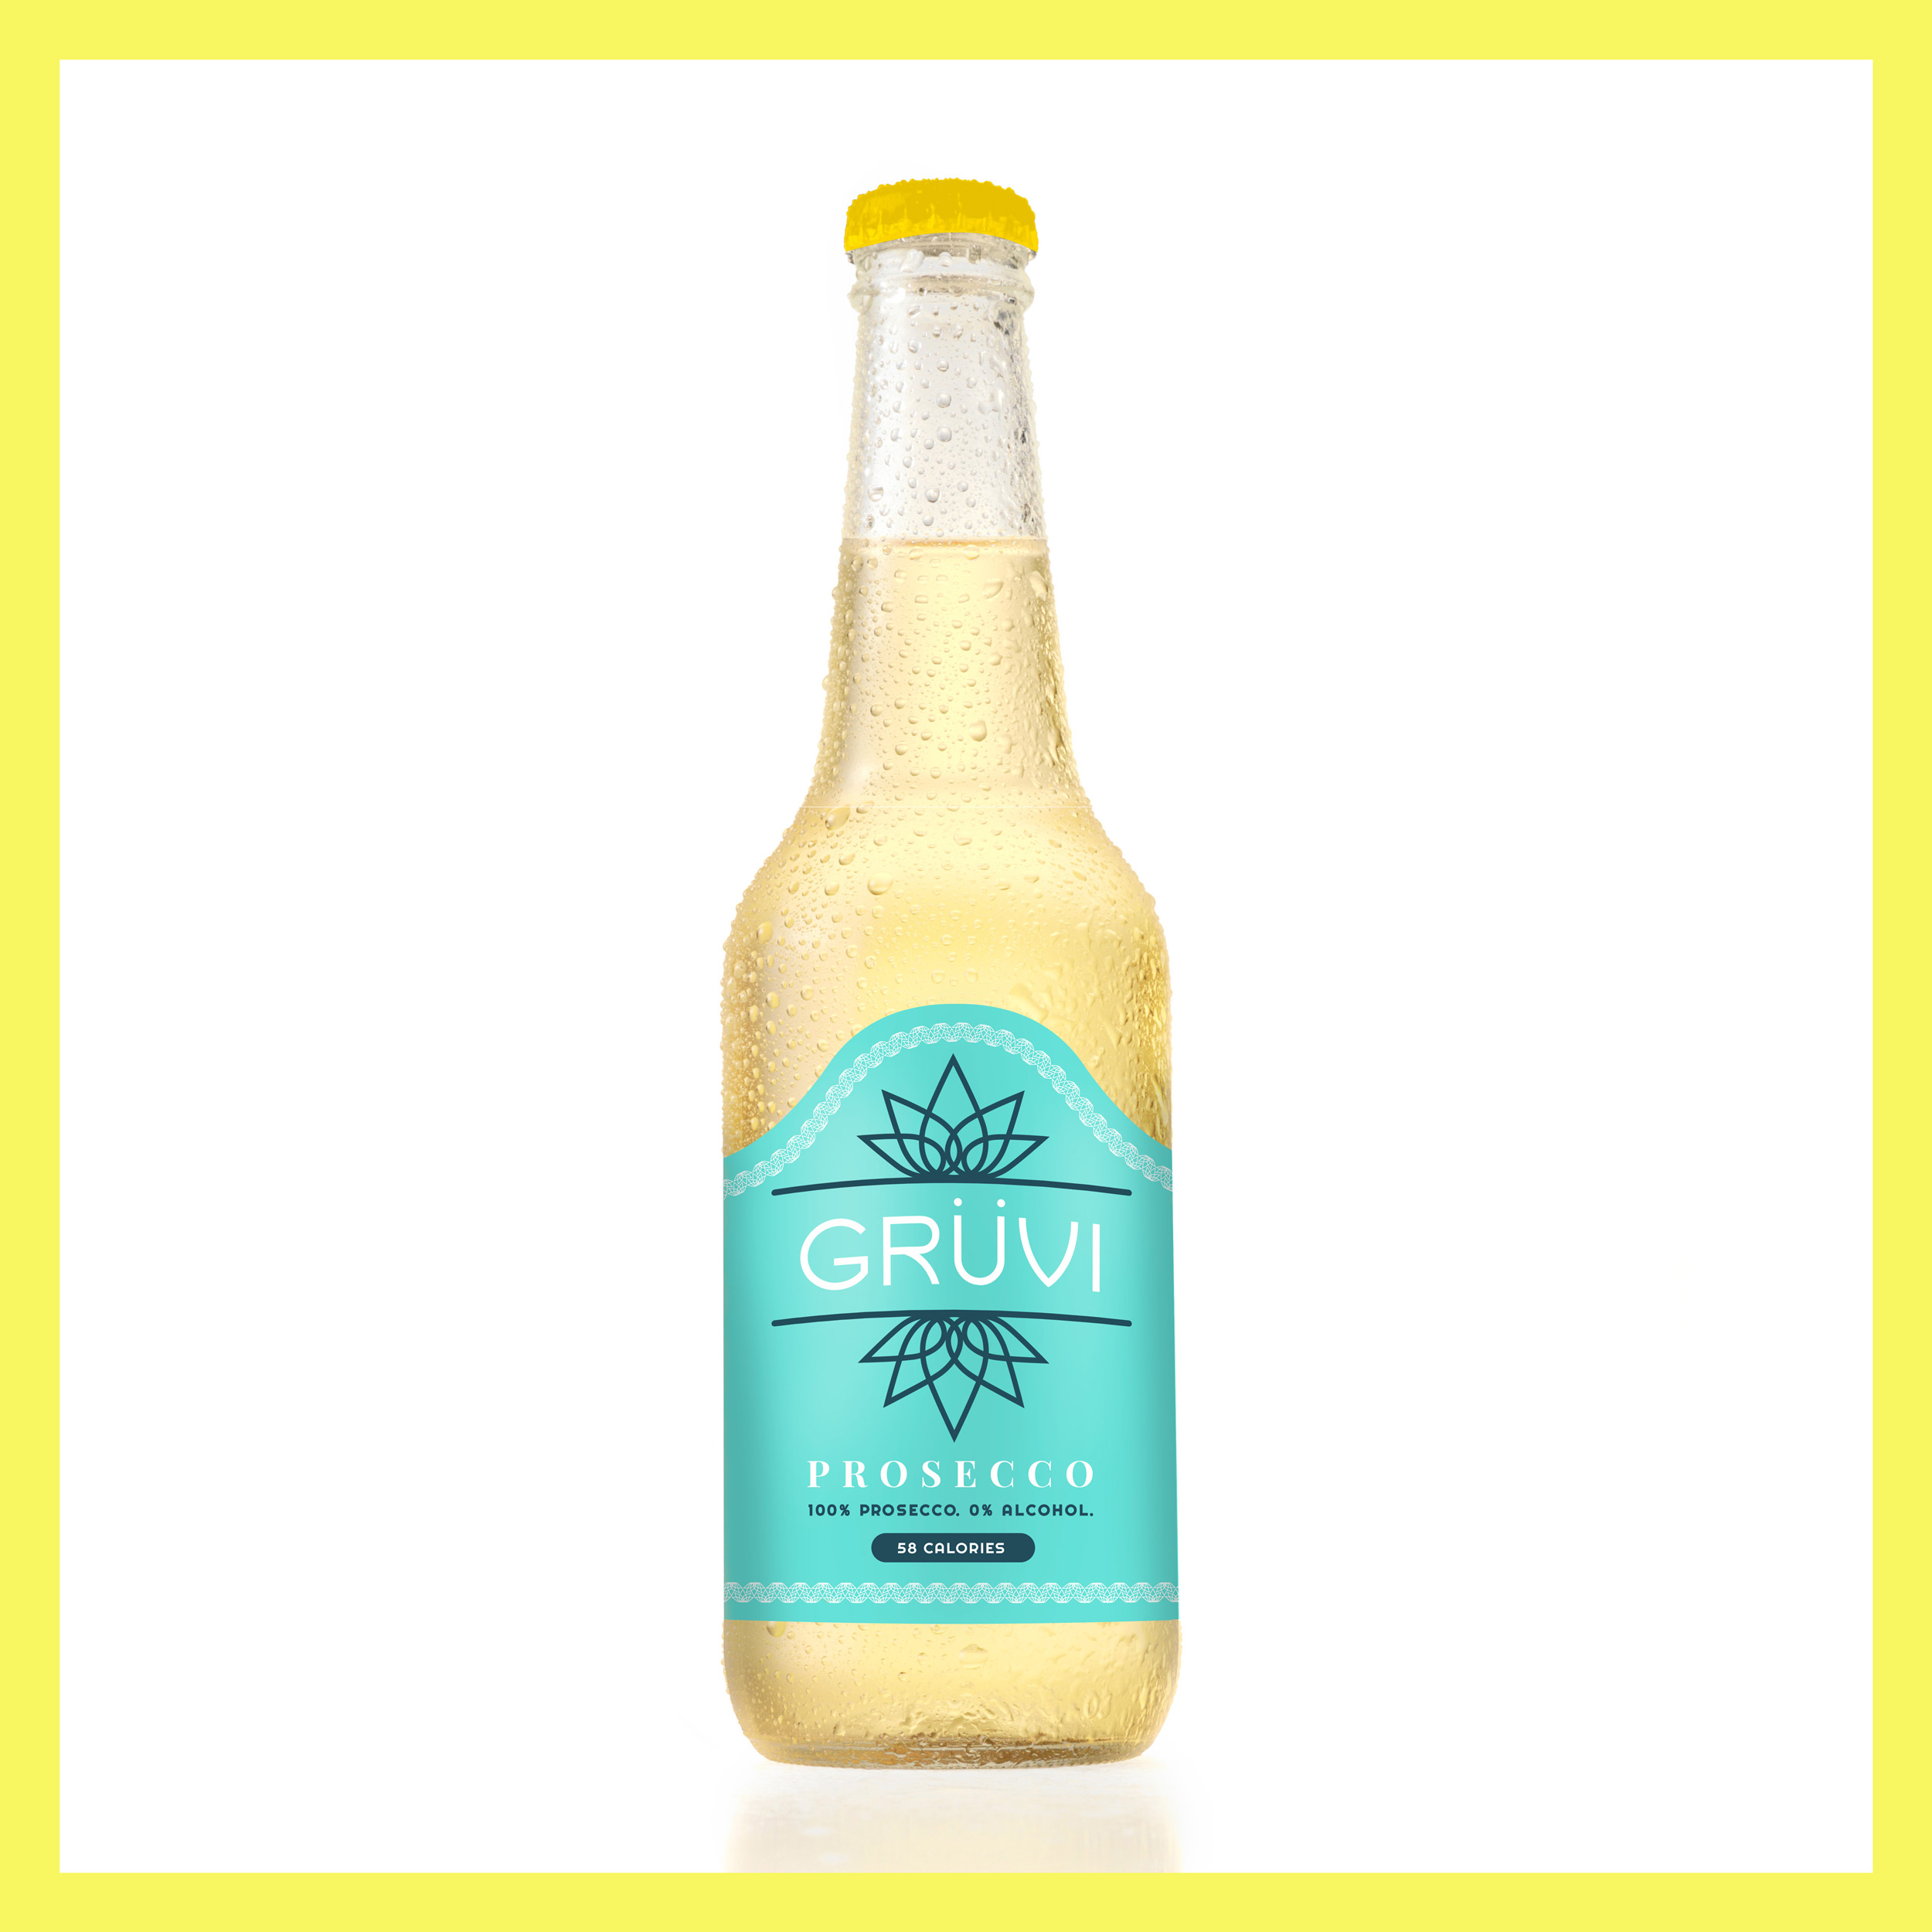 Gruvi Prosecco   A floral and bubbly Prosecco, perfectly carbonated and lively to drink. Let the terpene Linalool help reduce your stress and anxiety.   .